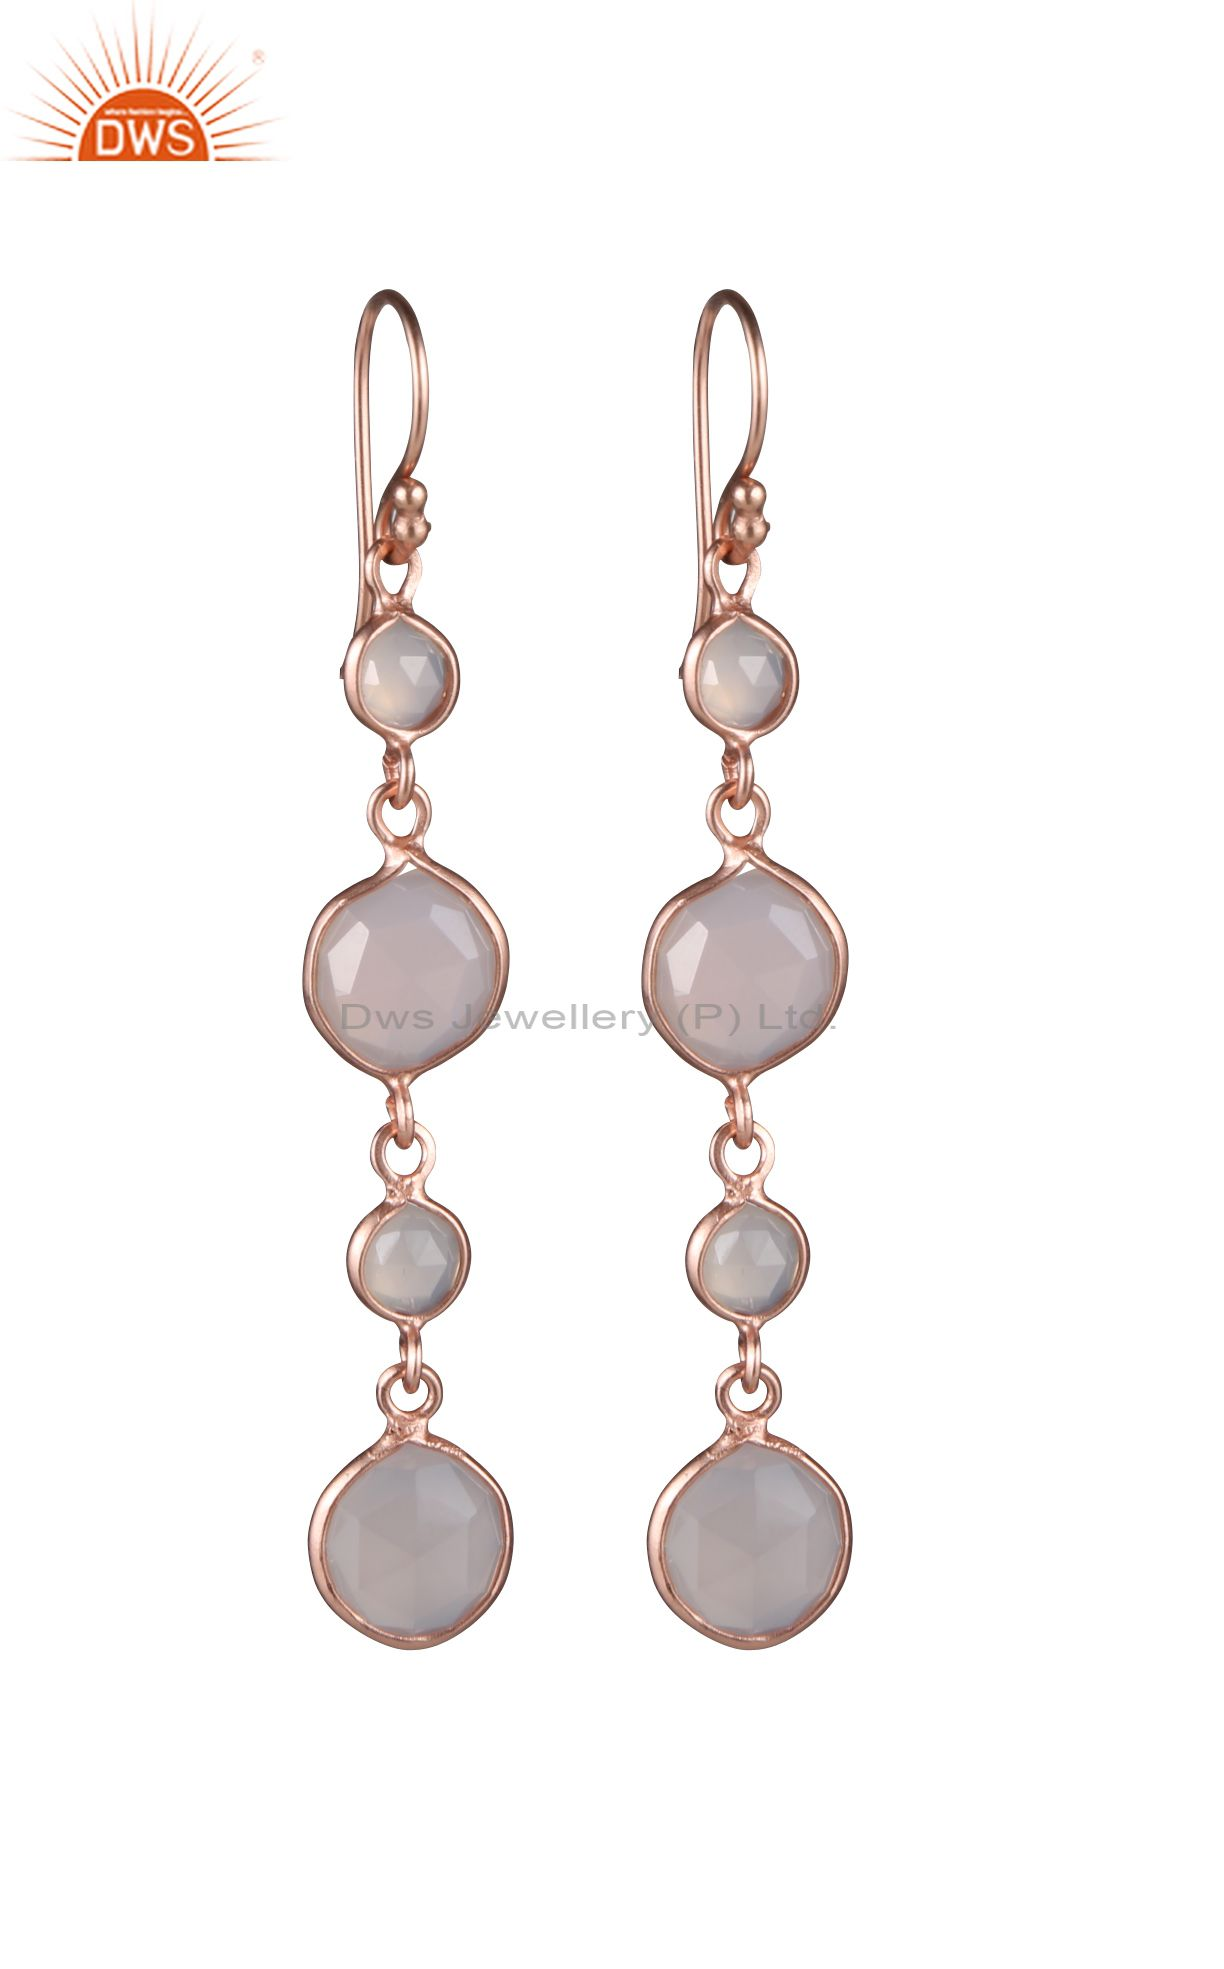 18K Rose Gold Plated Sterling Silver Rose Chalcedony Bezel Set Dangle Earrings